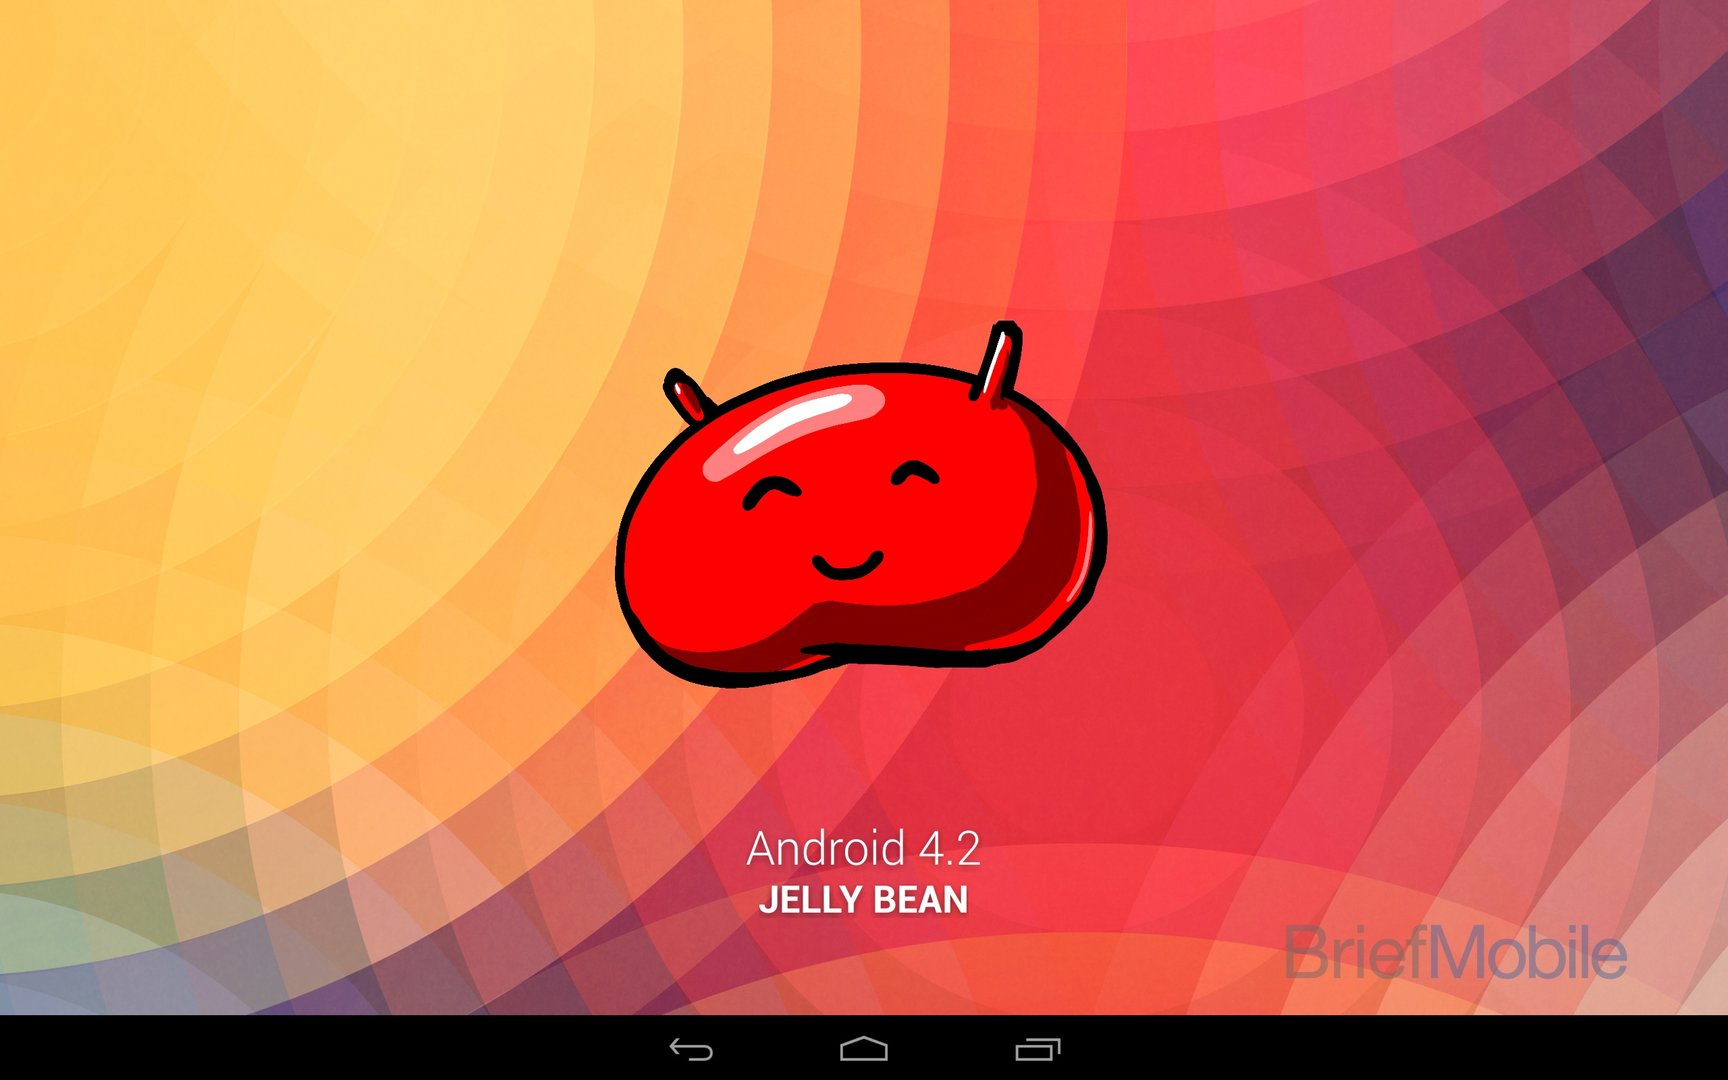 Jelly Bean 4.2